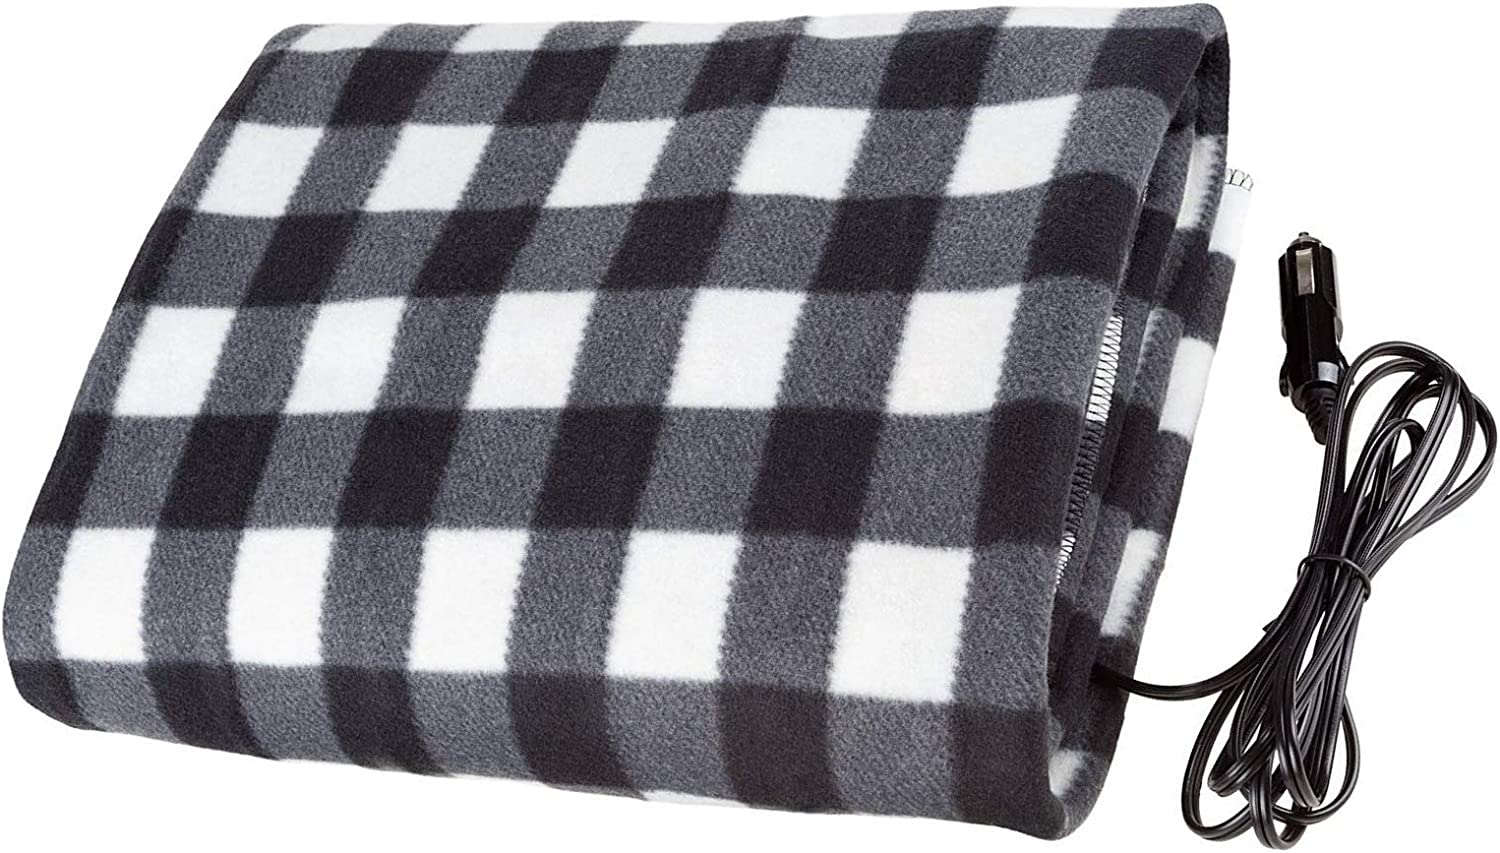 Car Electric Blanket Safety Low Voltage Heating Blanket Car Fleece Material with Switch Thermostat 12V Electric Warm Blanket